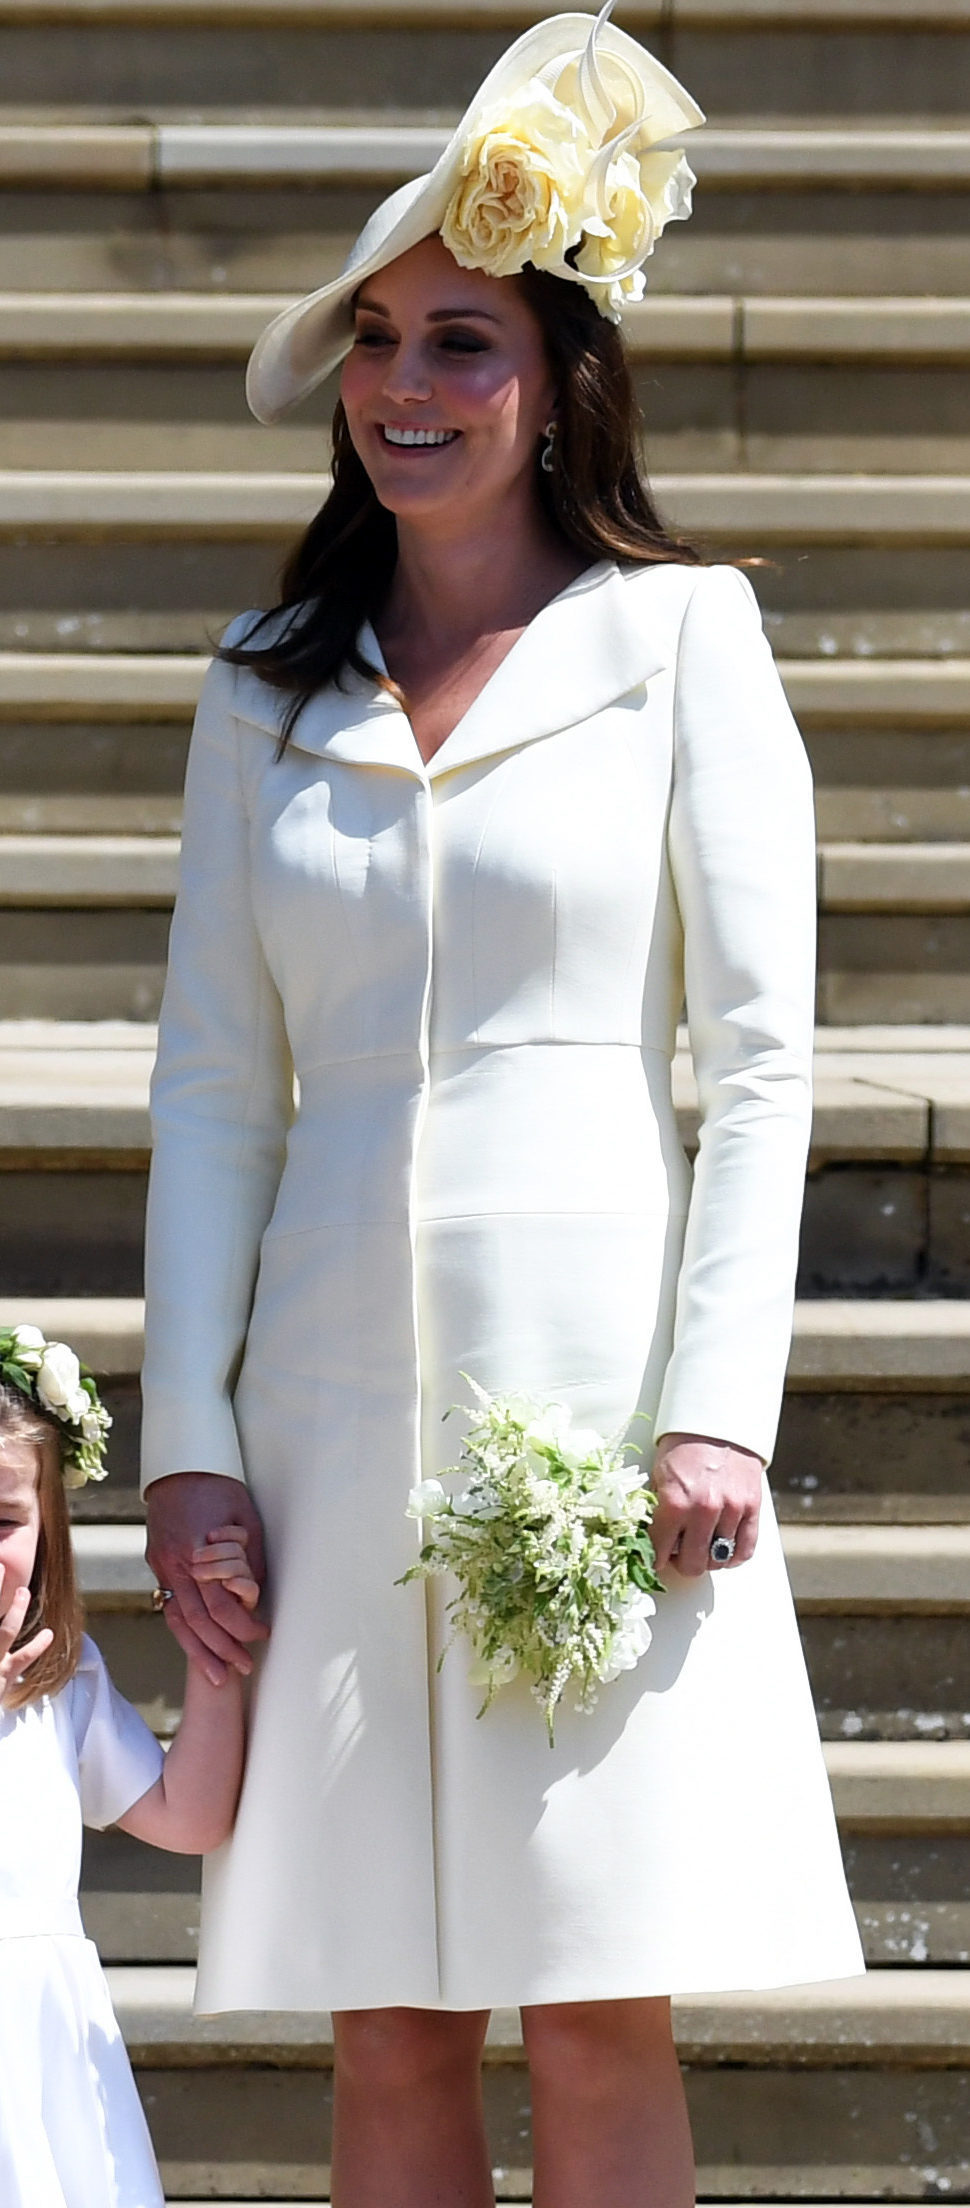 The Duchess of Cambridge chose pale yellow Alexander McQueen for Prince Harrys wedding to Meghan. Pool Photo by Neil Hall/UPI